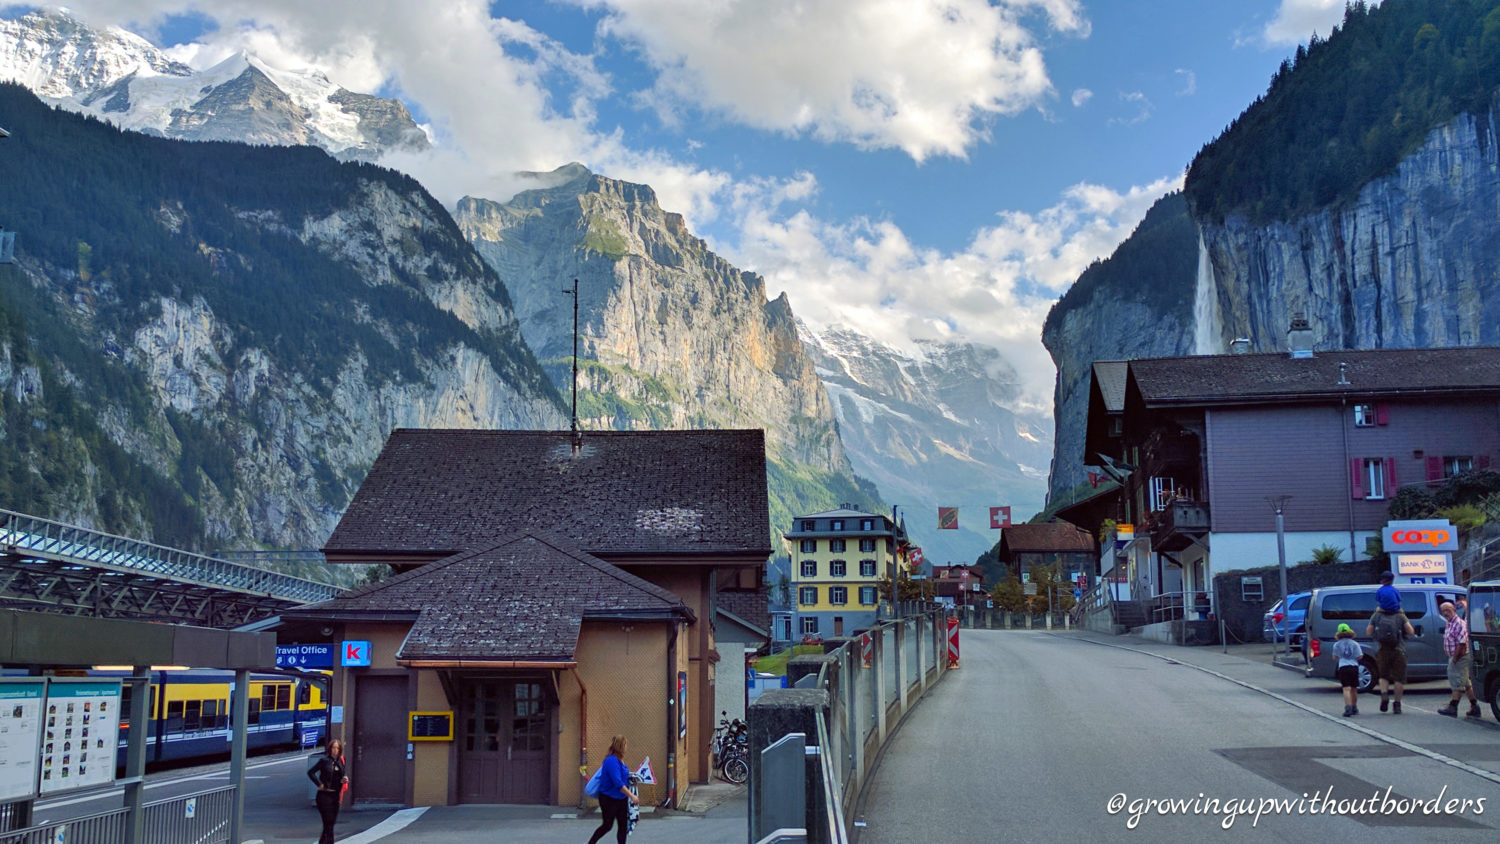 Interlaken, Lauterbrunnen, Switzerland